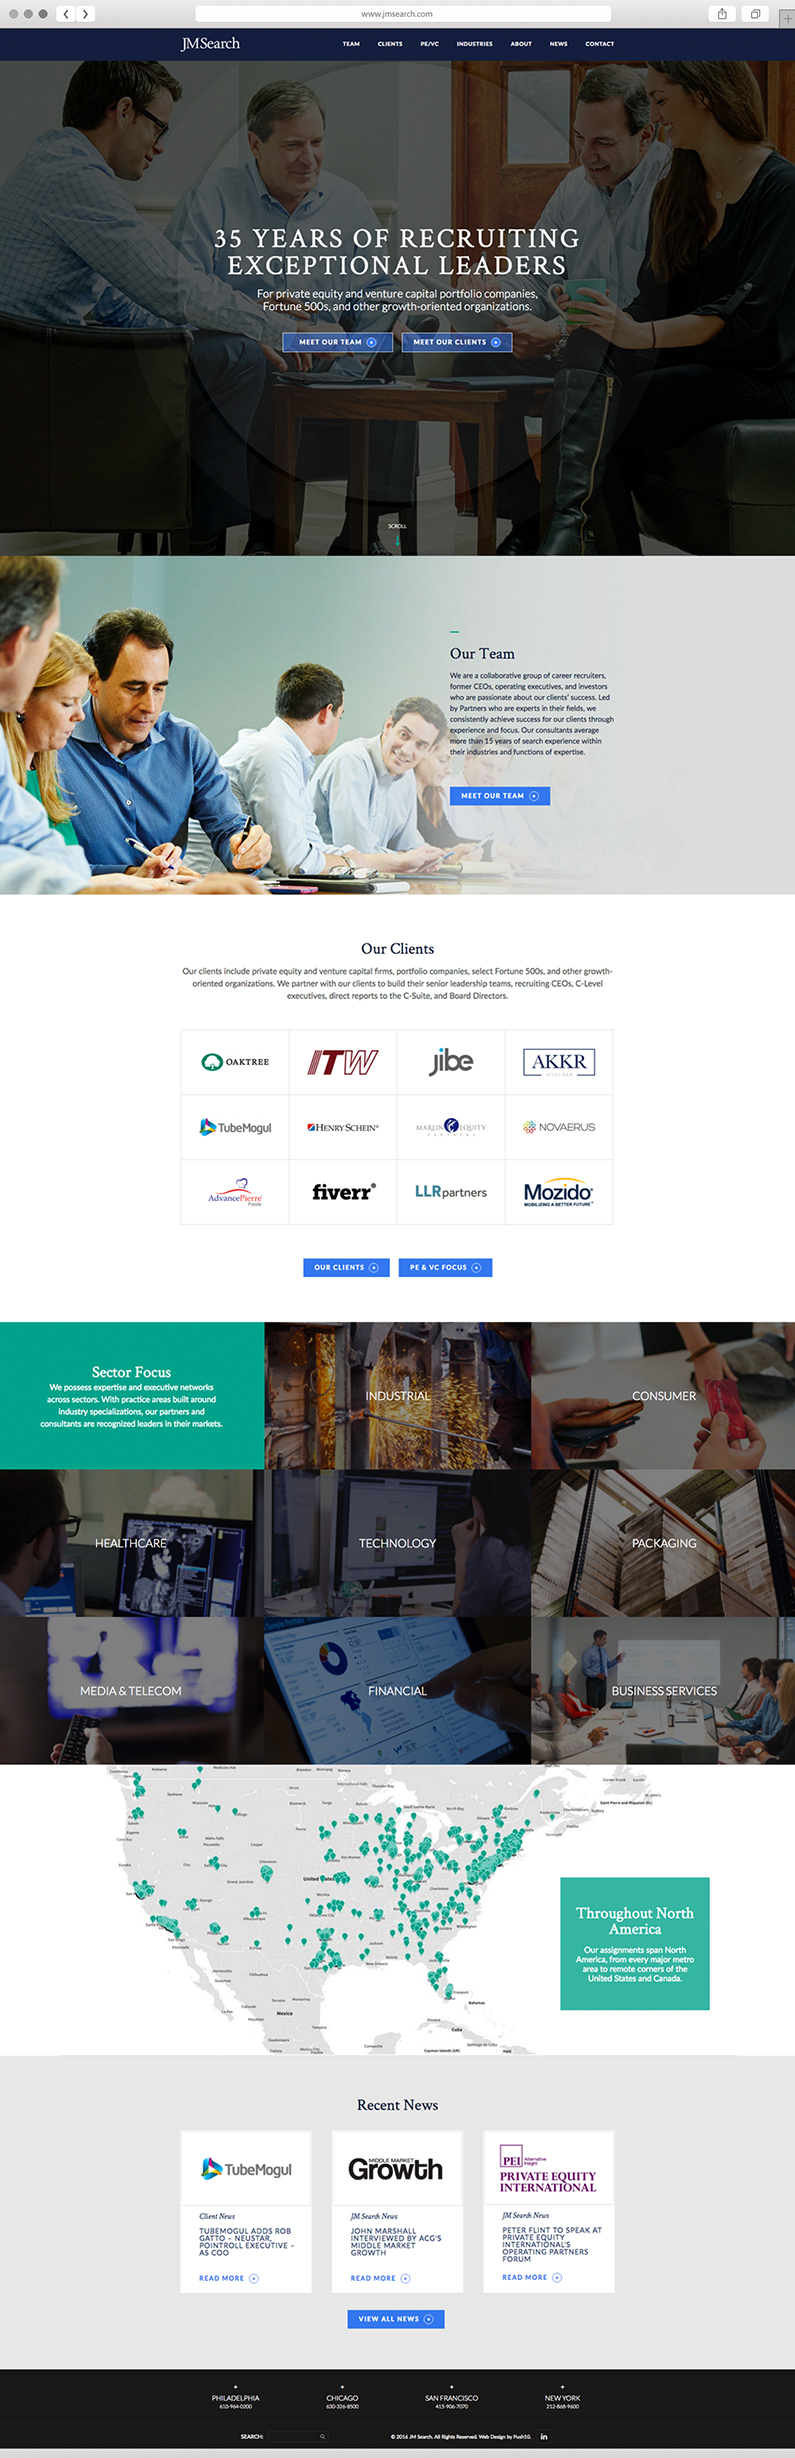 UX design and web development for executive search firm in Philadelphia, JM Search, Web design, responsive web design, web design agency, digital marketing, web development and design, wordpress sites, push10, jm search site